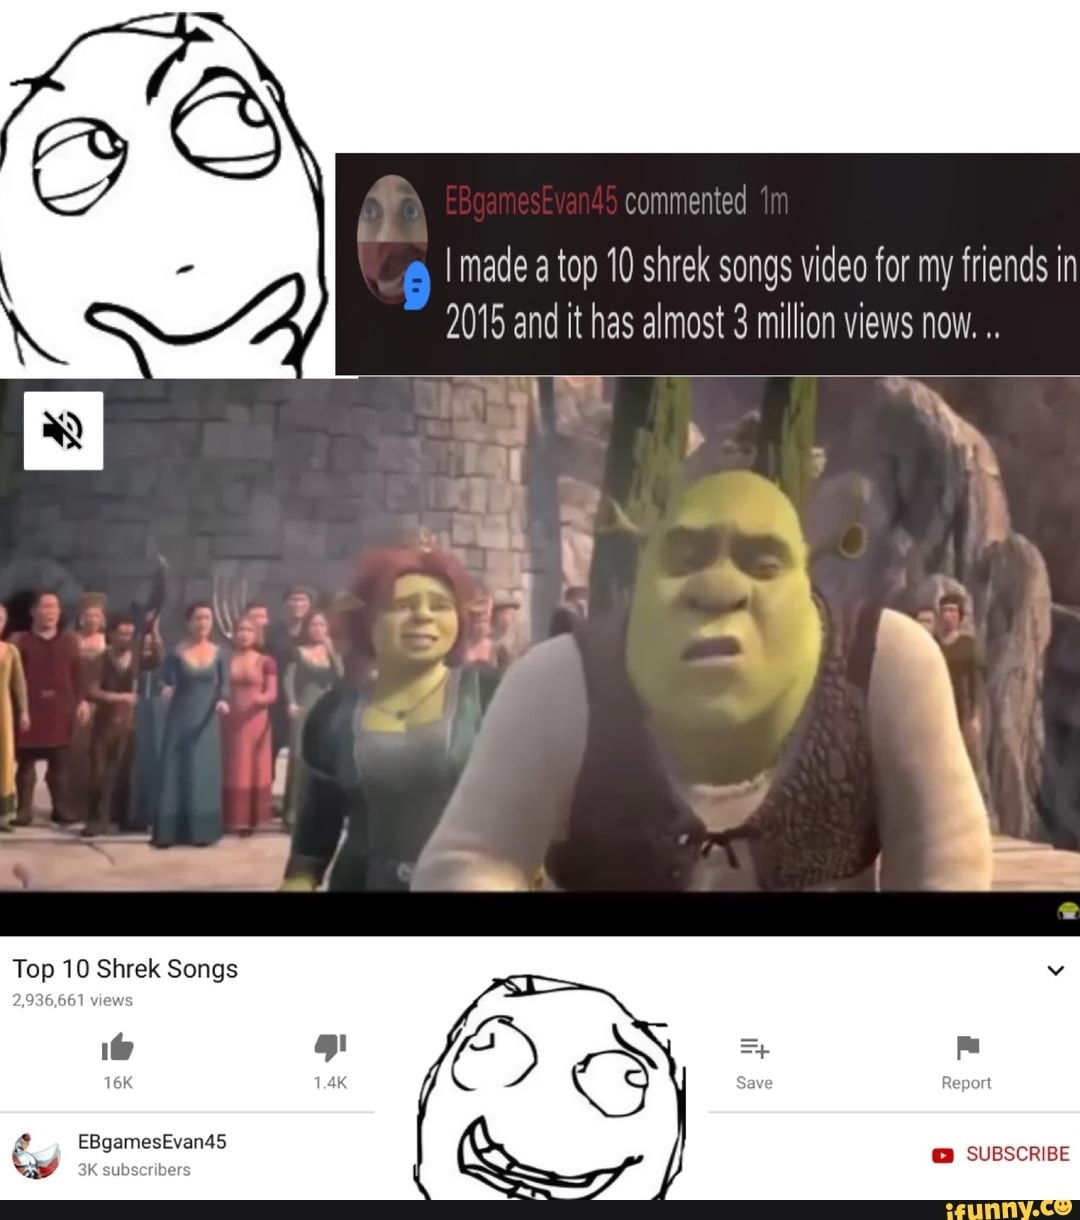 Made A Top 10 Shrek Songs Video For My Friends In 2015 And It Has Almost 3 Million Views Now Ifunny Songs Memes Poor Life Decisions